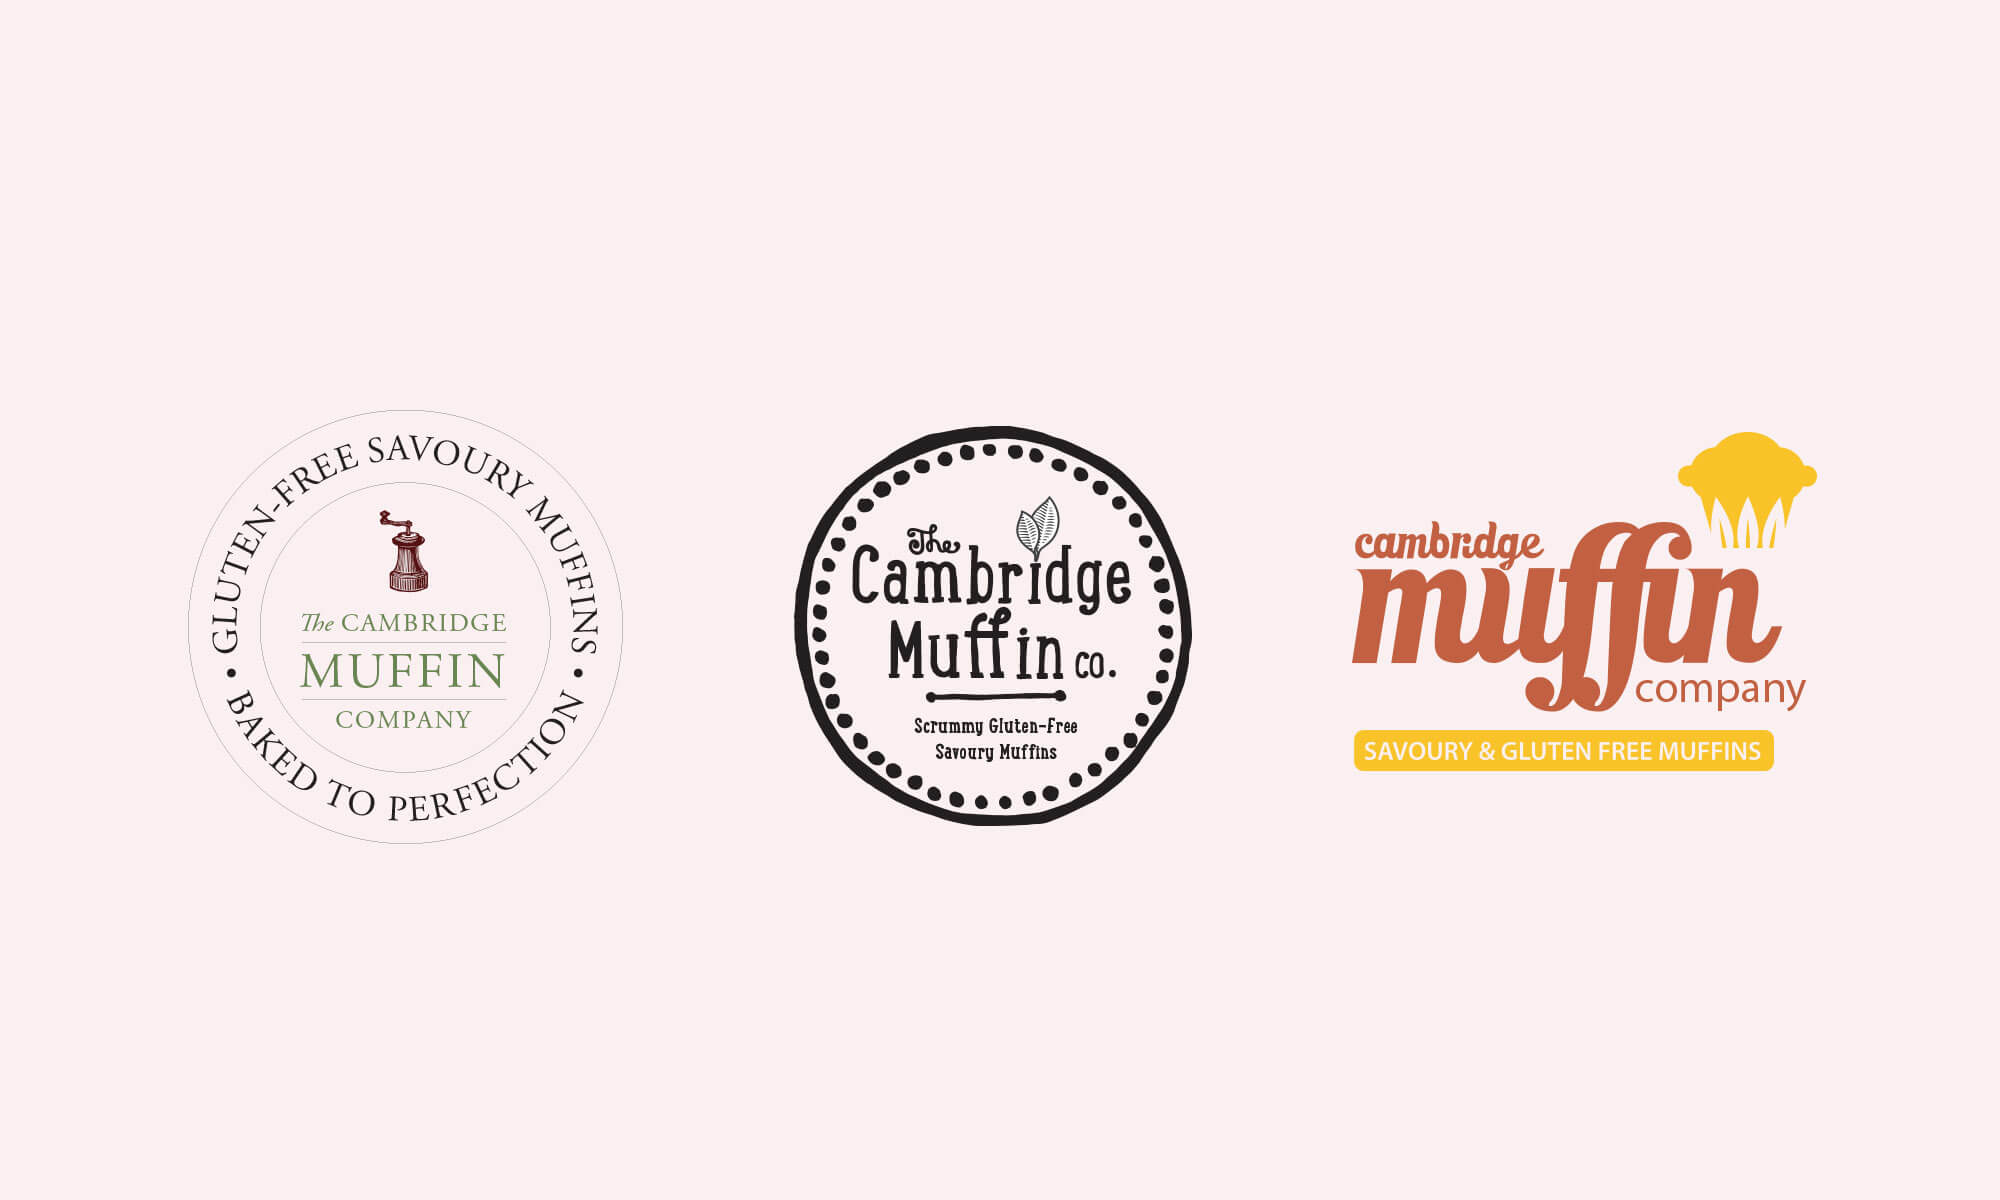 Cambridge Muffin company logo alternatives